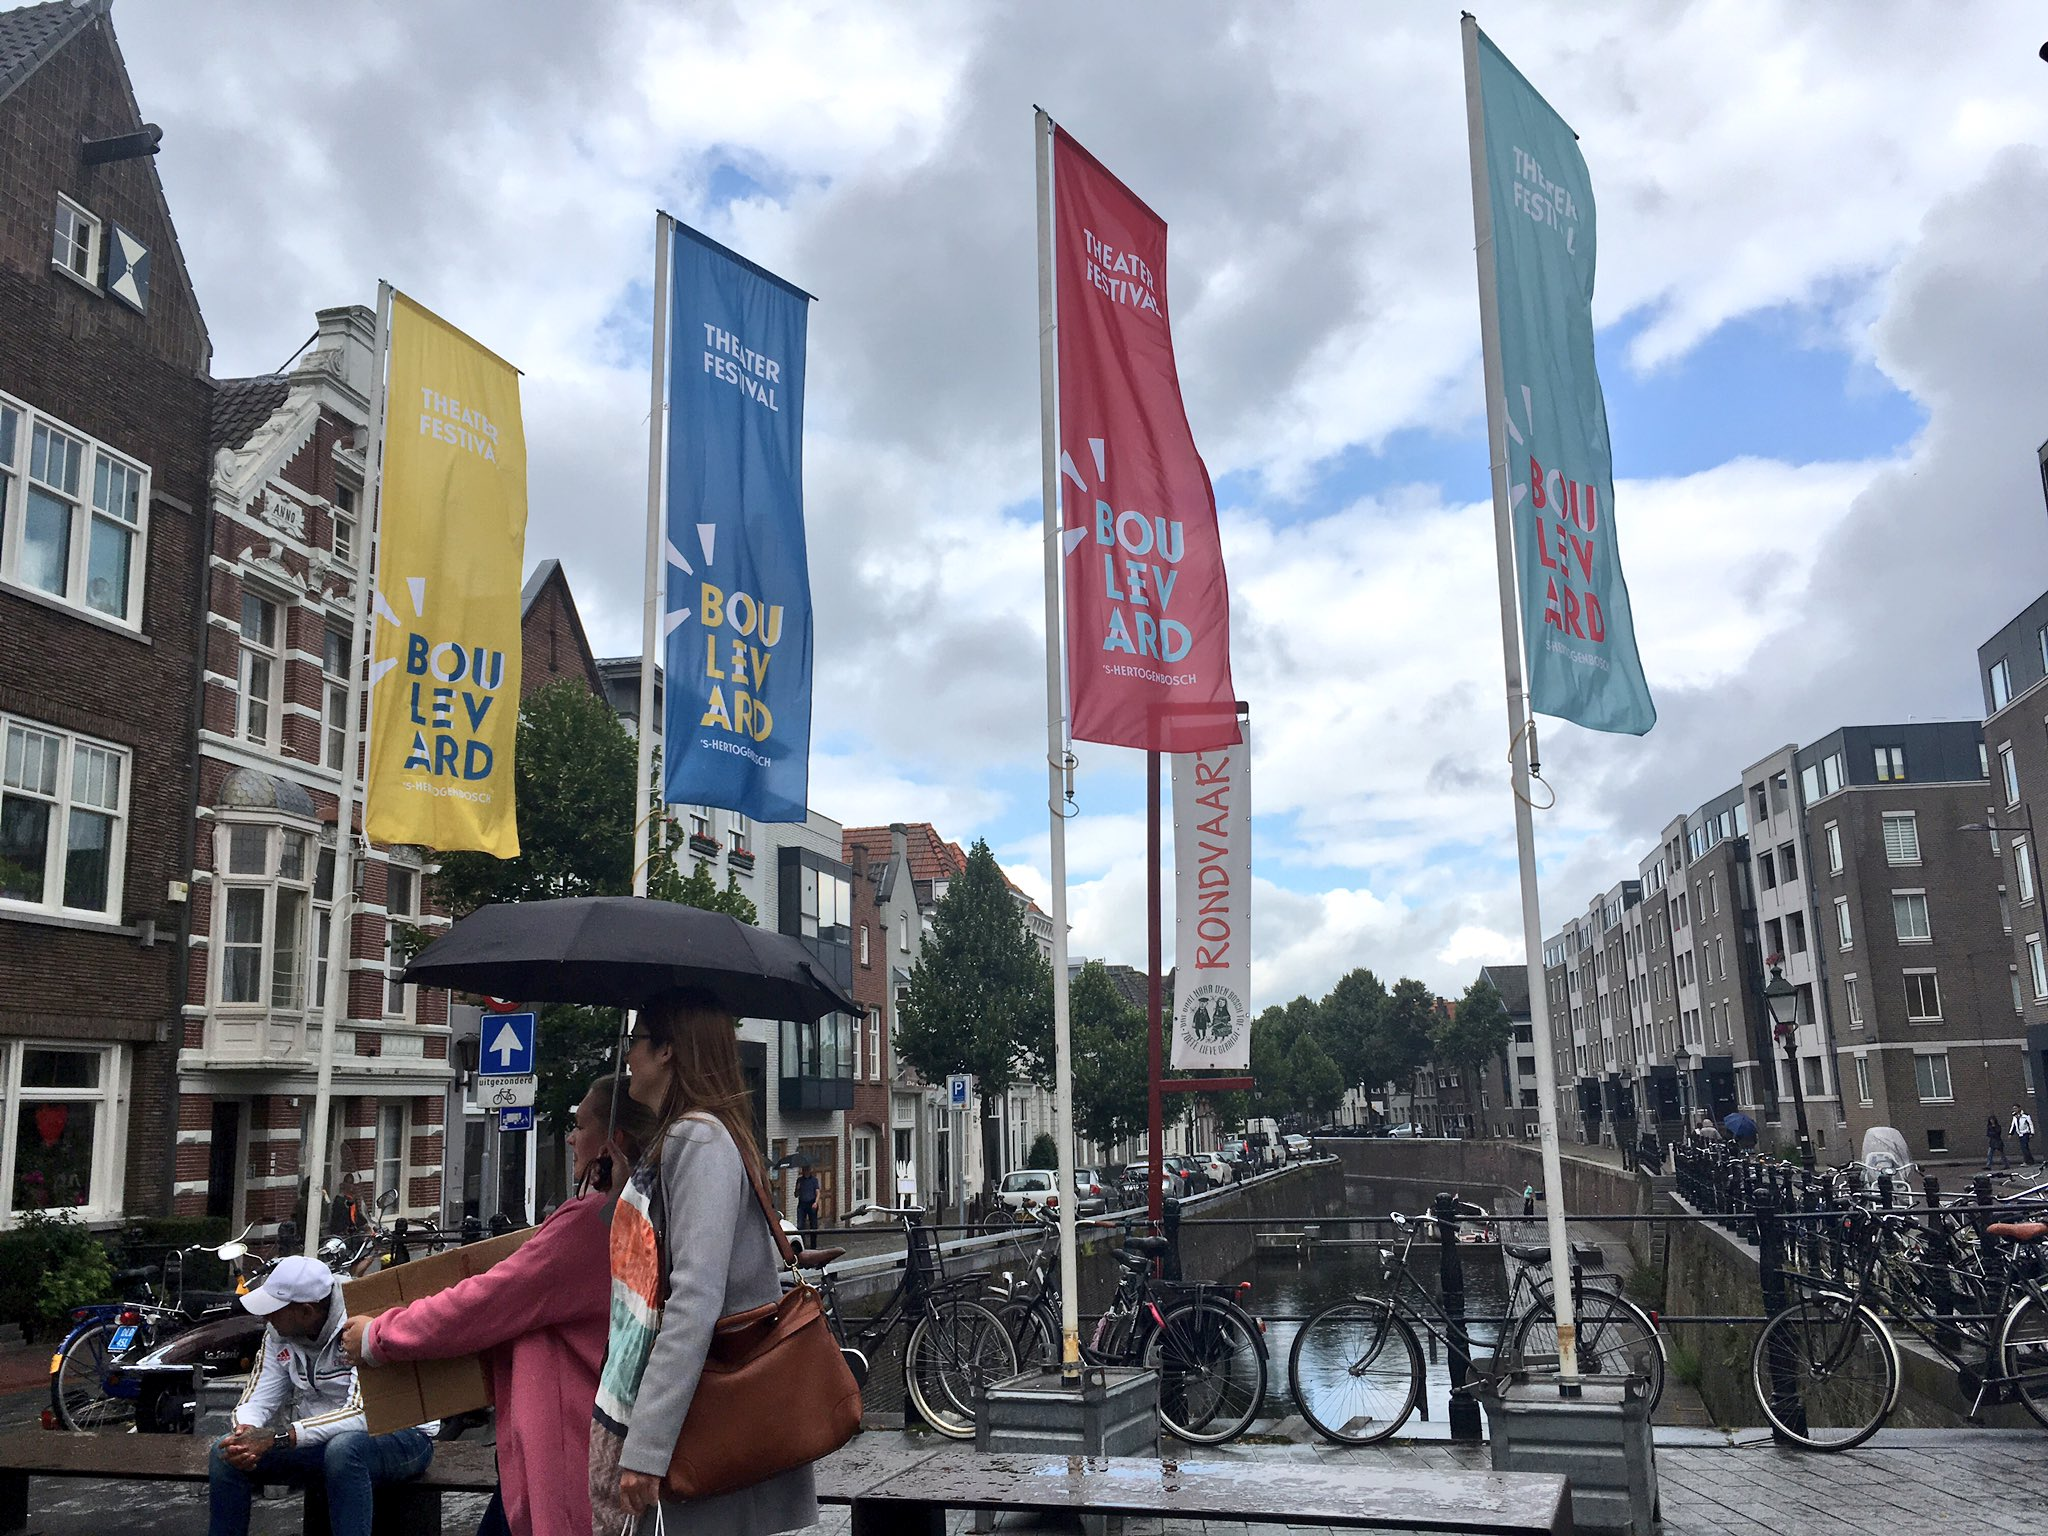 Well @TFBoulevard was an absolute knock out theatre festival. A lovely few days spent with fab company and brilliant shows. A real treat. https://t.co/SUvUdlGP3p